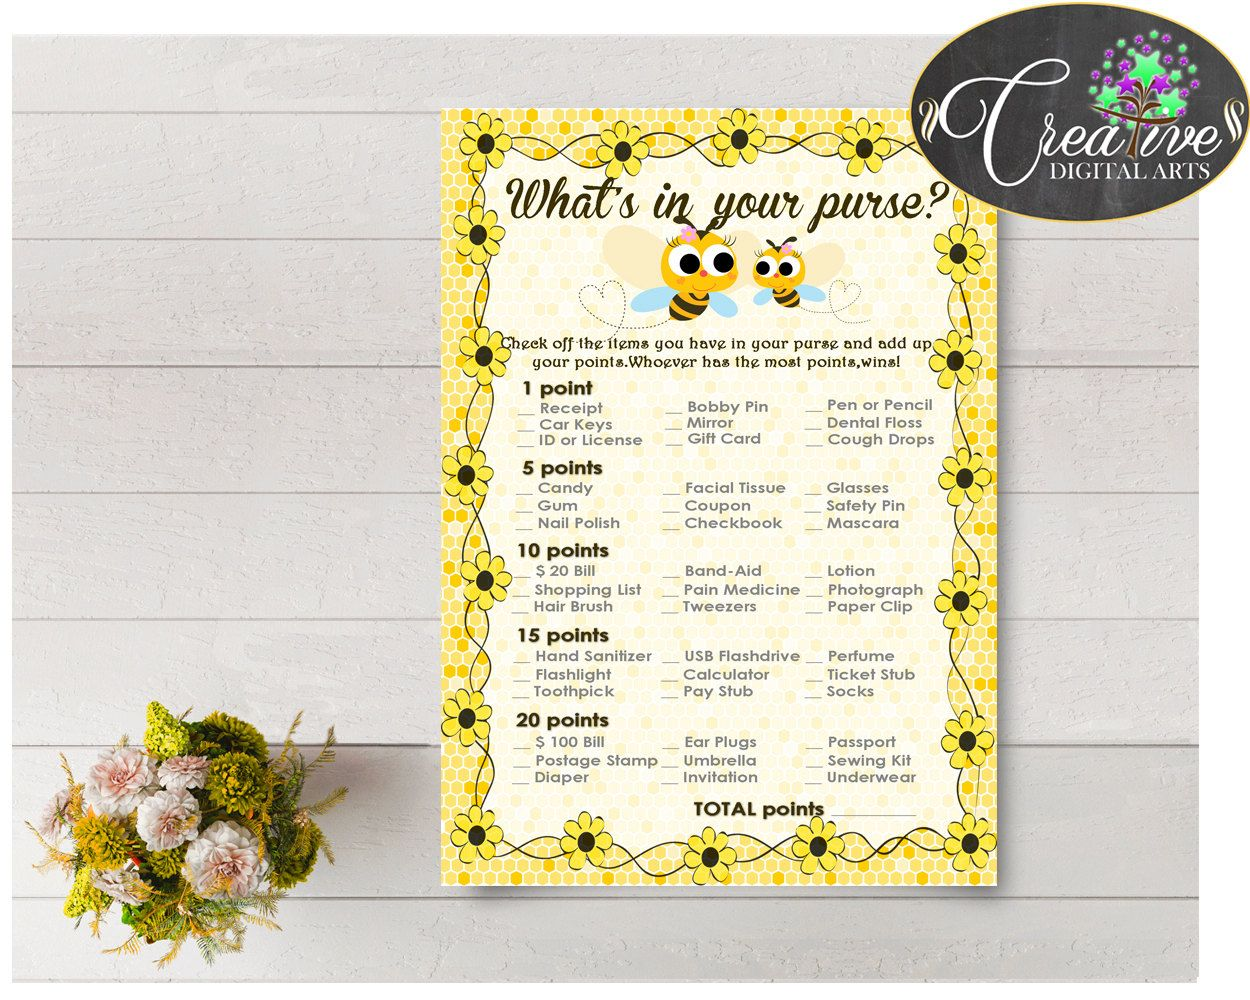 Shower Bee Theme Shower Queen Bee Bag Items Bag Game WHATS IN YOUR Purse, Digital Print, Instant Download, Baby Shower Idea - bee01 #babyshowergames #babyshower